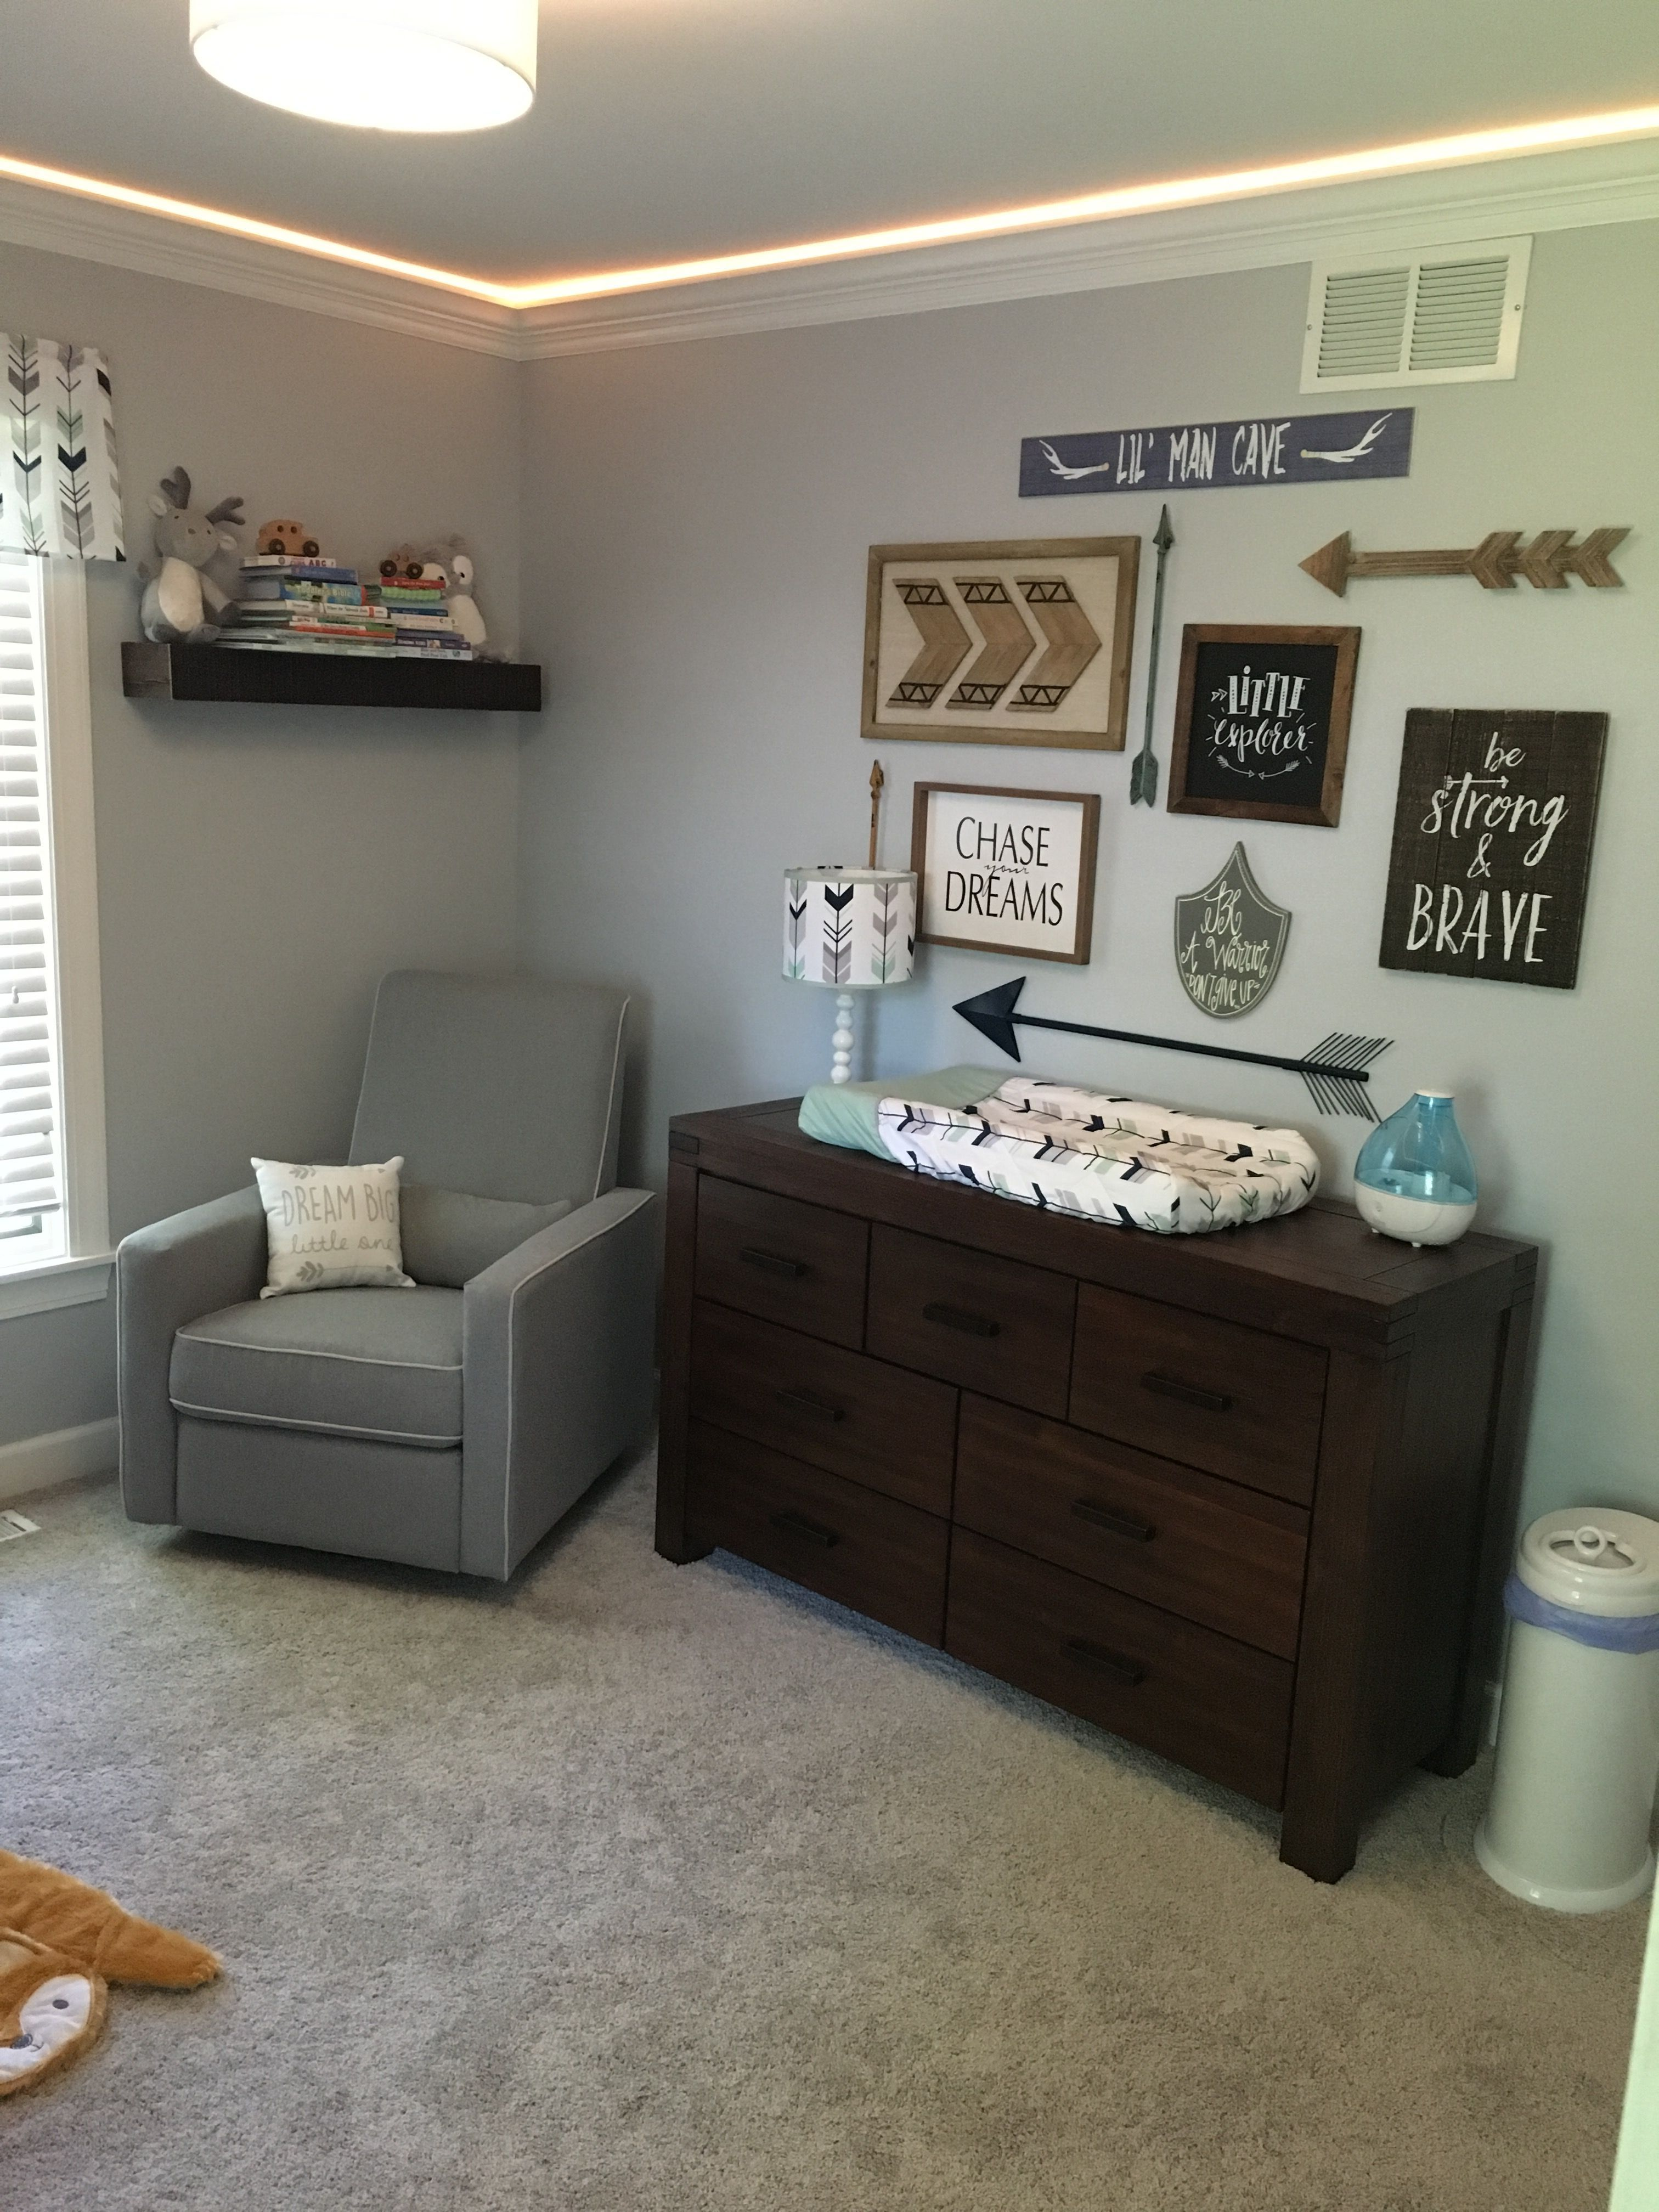 Cute Baby Boy Rooms: 20 Latest Trend Of Cute Baby Boy Room Ideas #dreamrooms